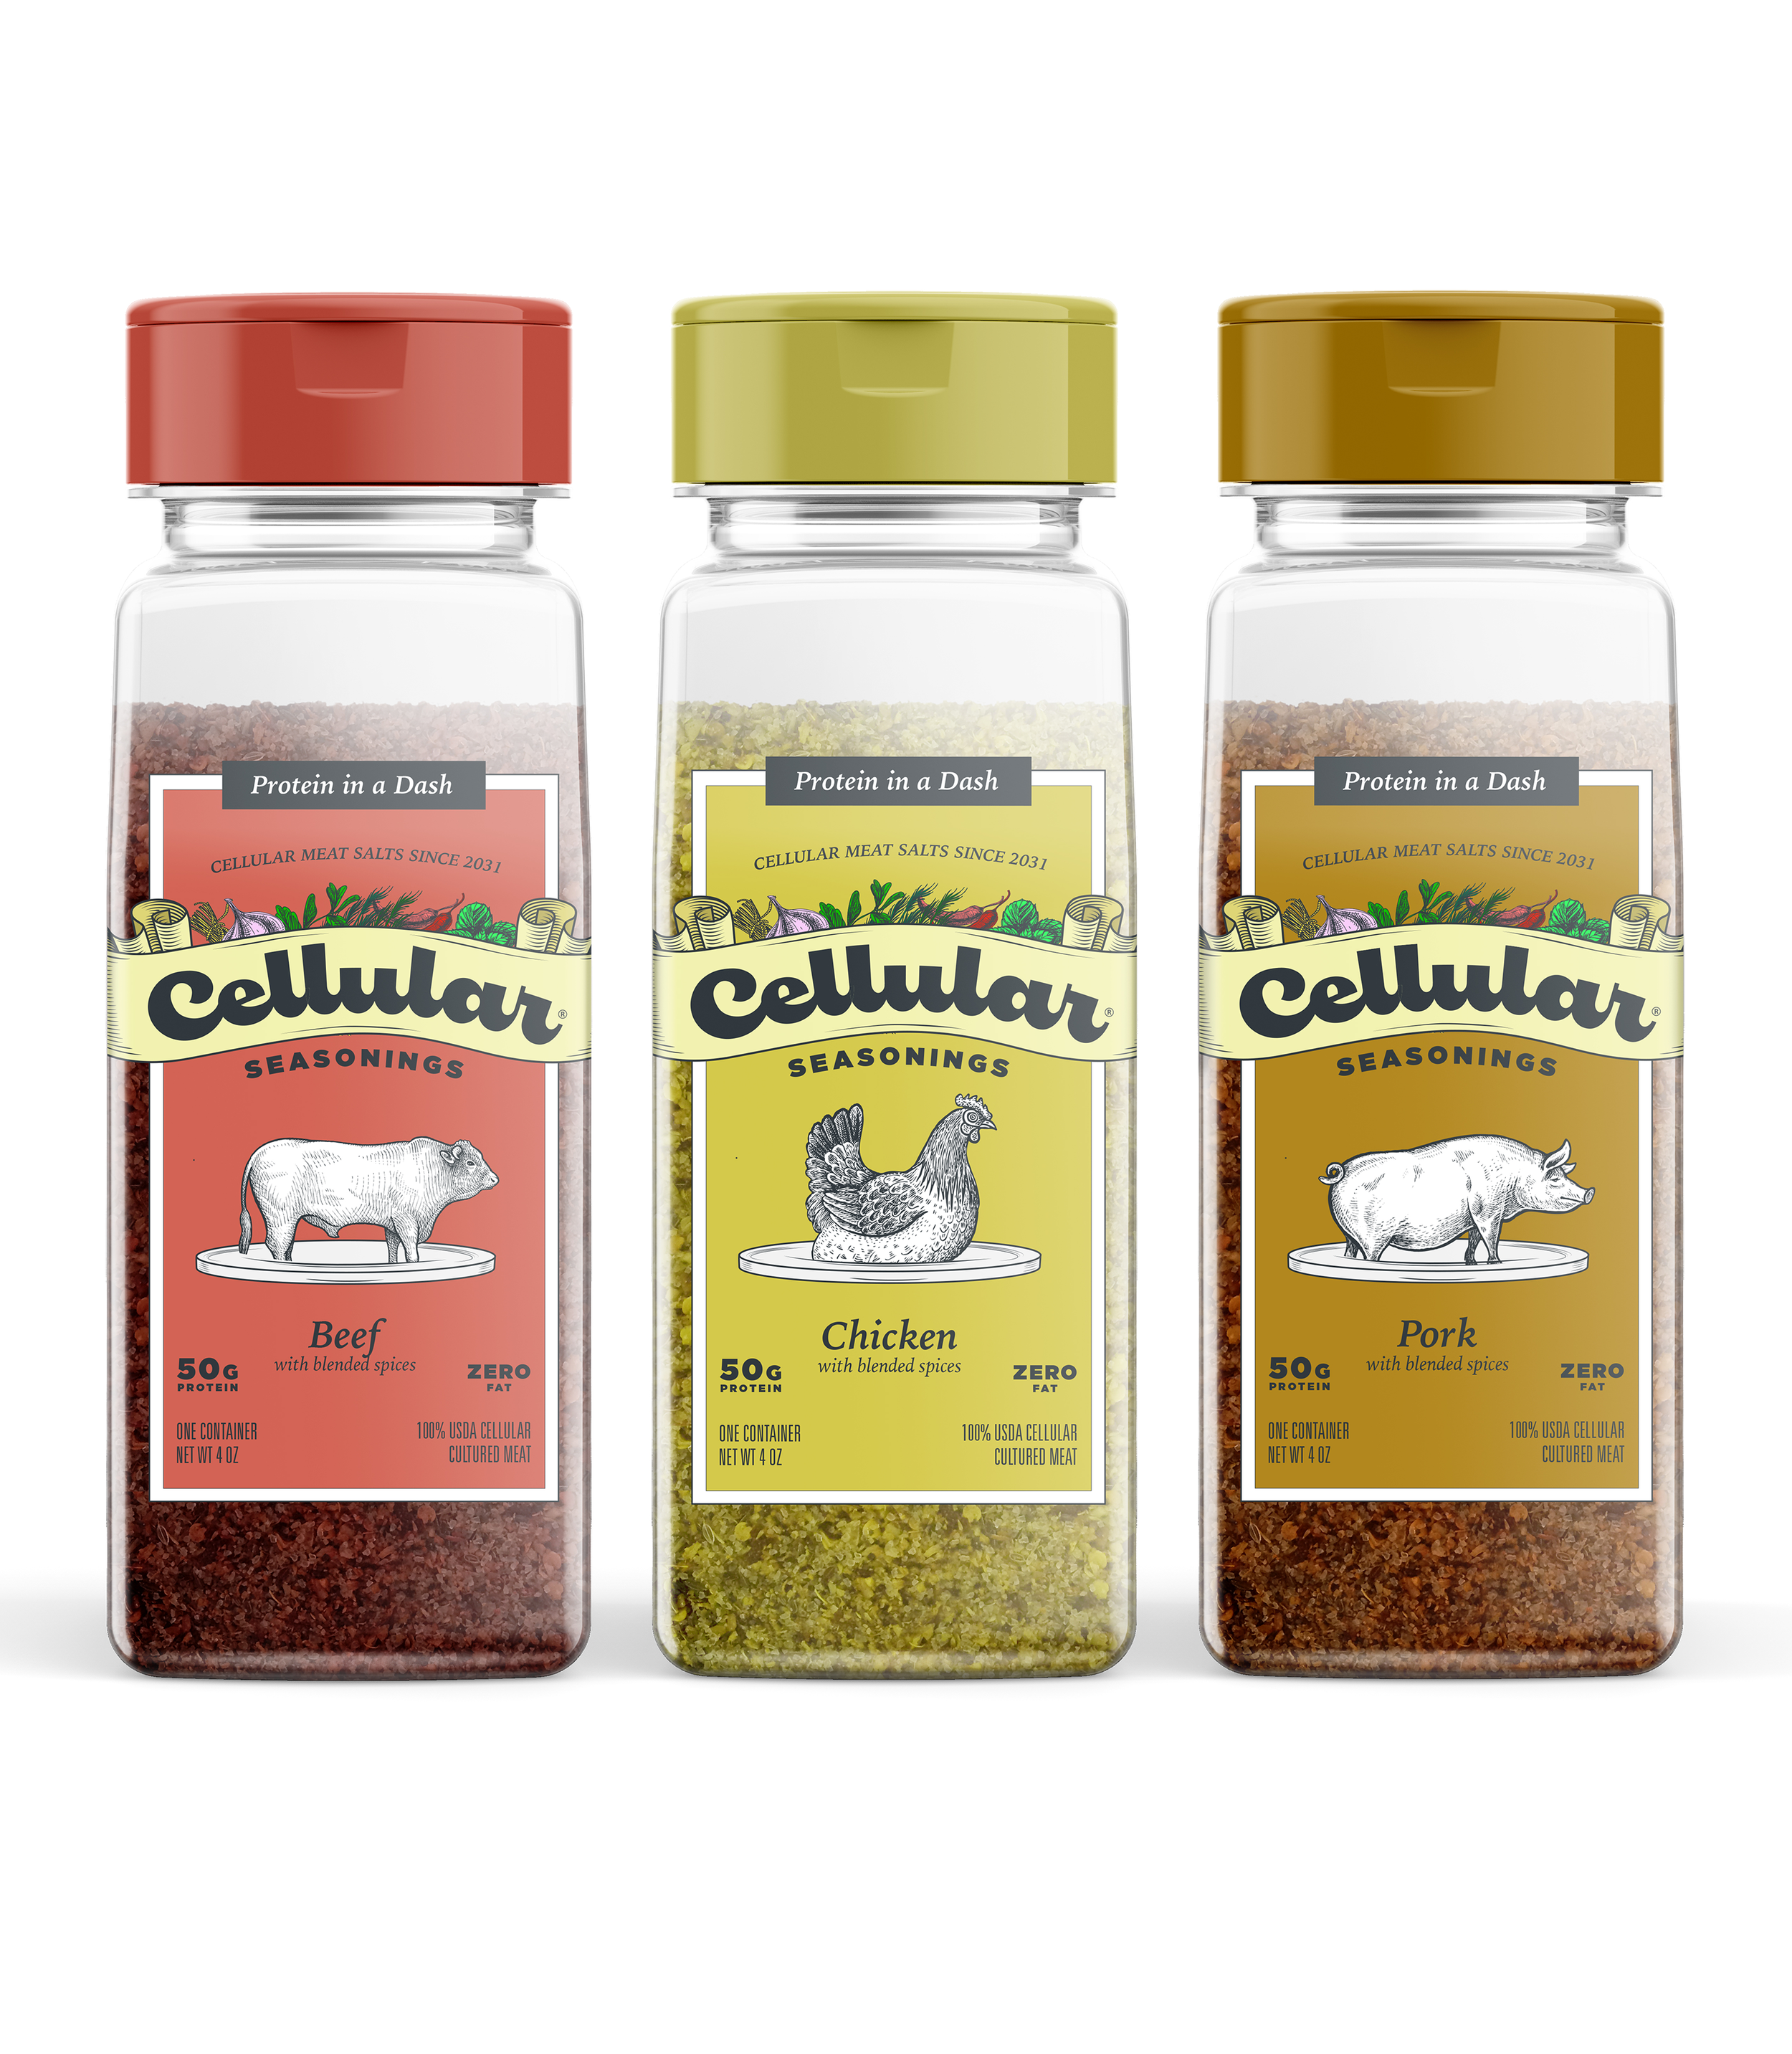 Cellular Seasonings    Cellular Seasonings Meat Salts are a delicious, convenient way to add a dash of real meat and seasoning to any dish. Our meat salts come in three flavors: chicken, beef, and pork, which are all made from 100% USDA Cellular cultured meat, NOT artificial meat flavoring.